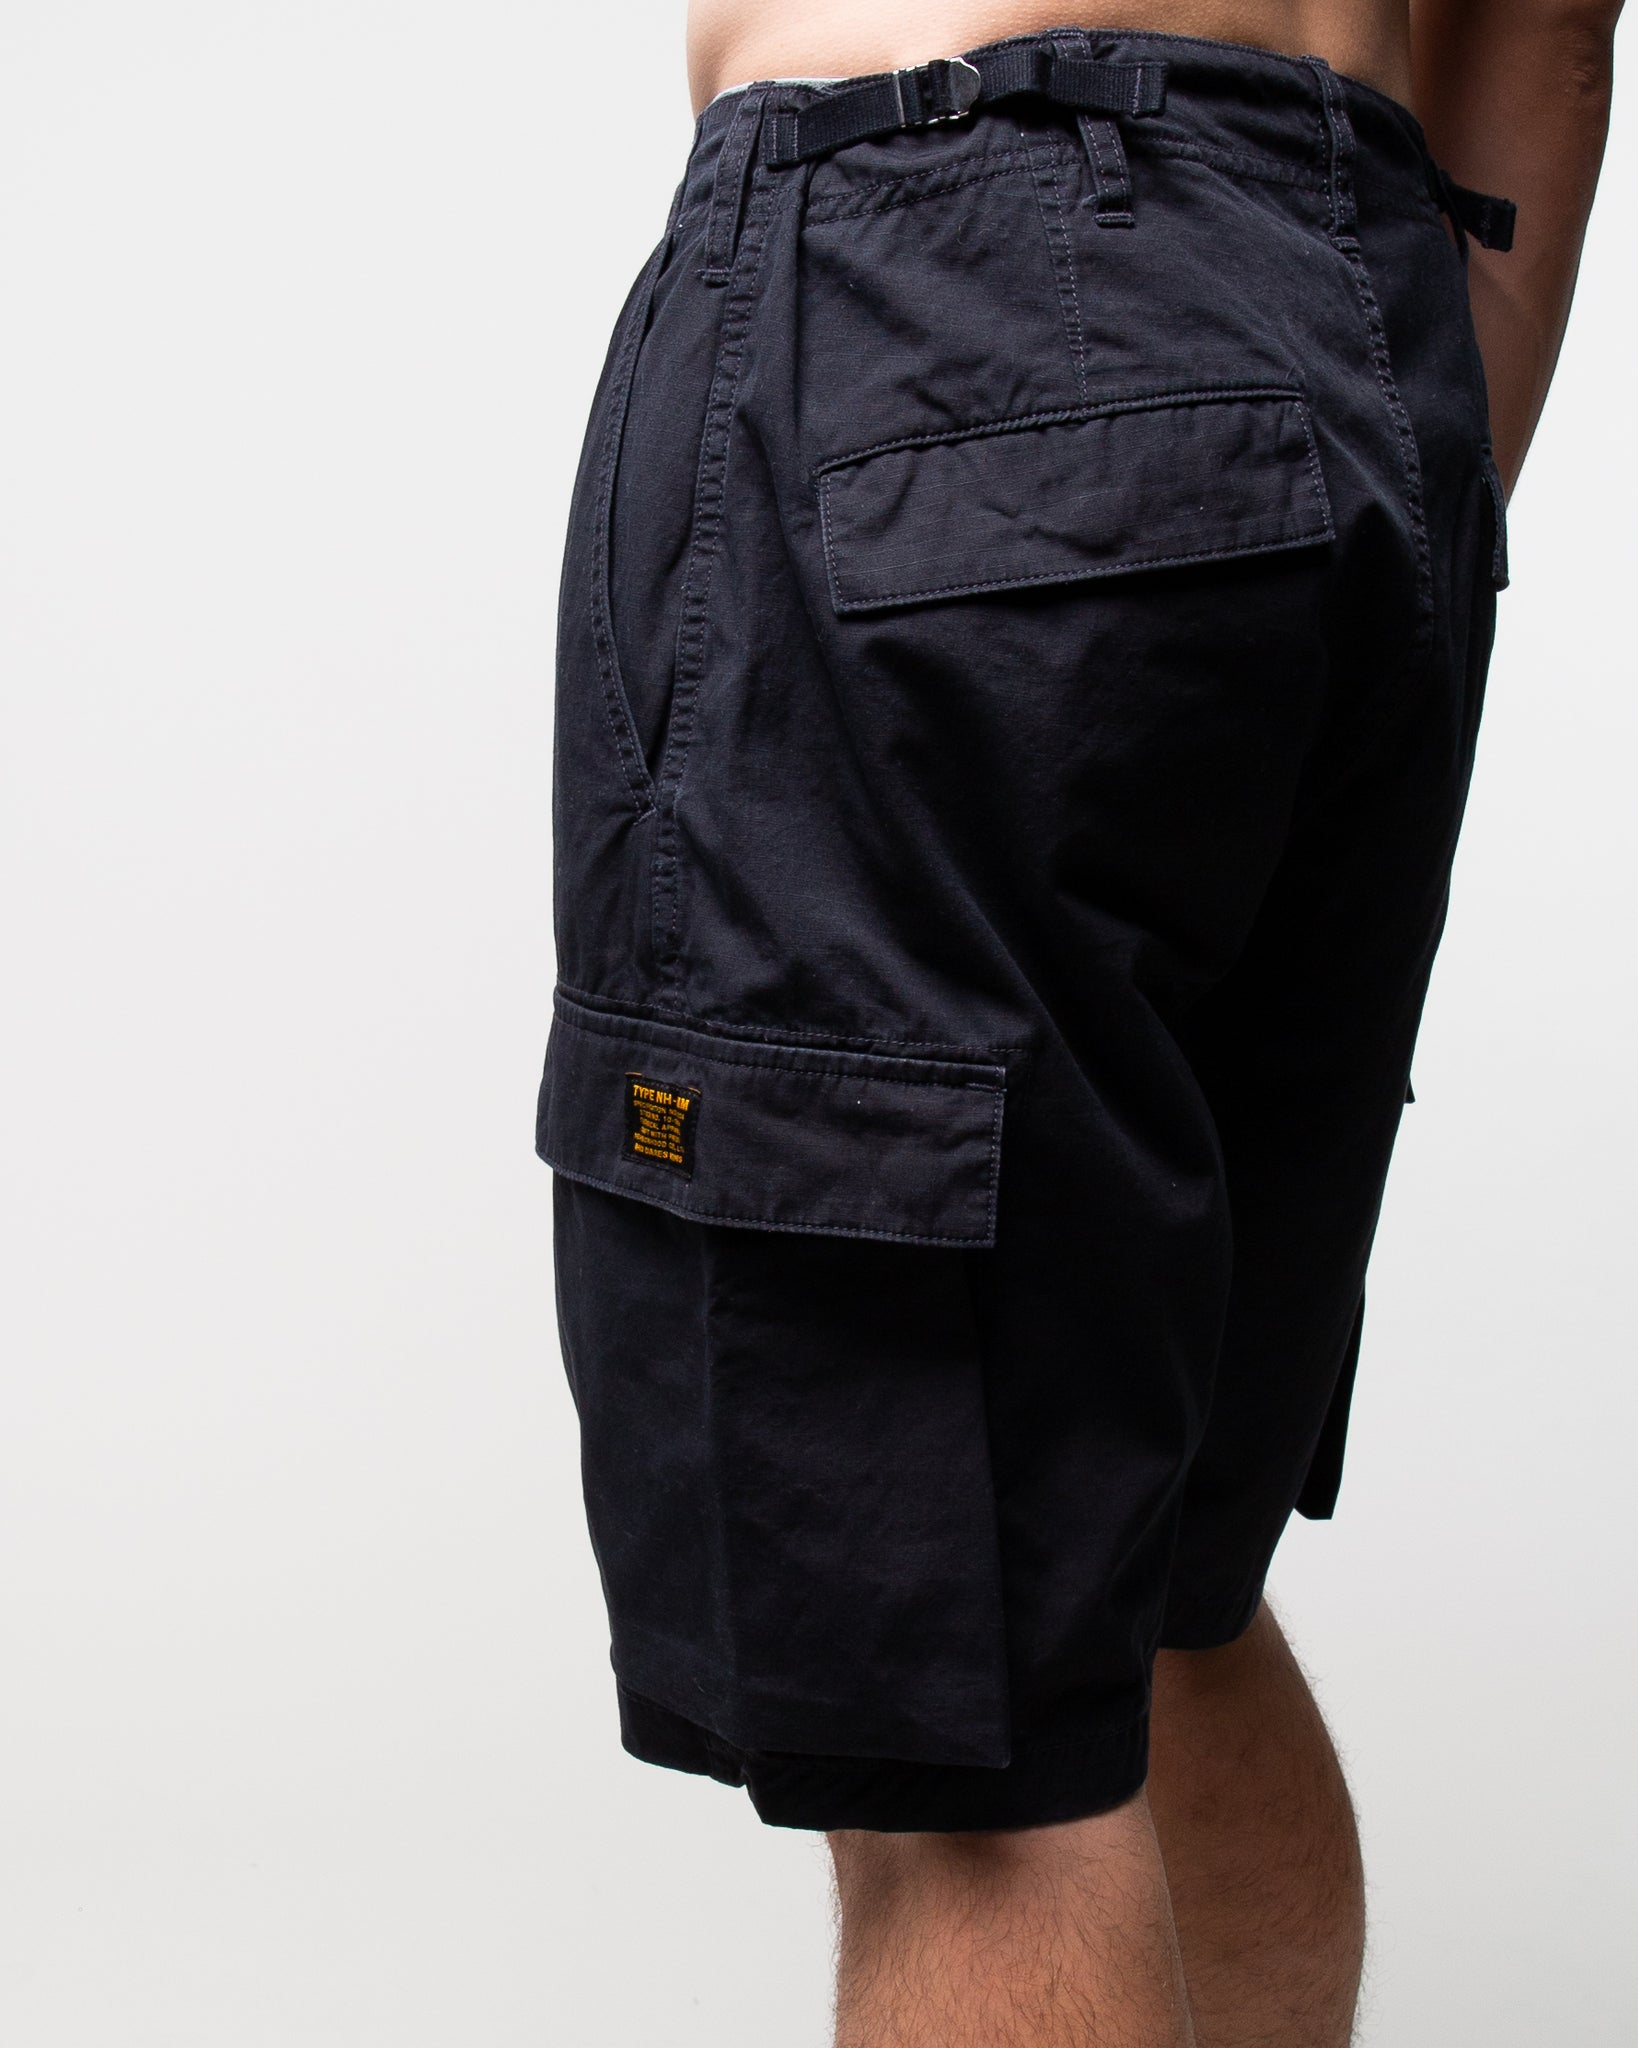 Mil-BDU Shorts Black